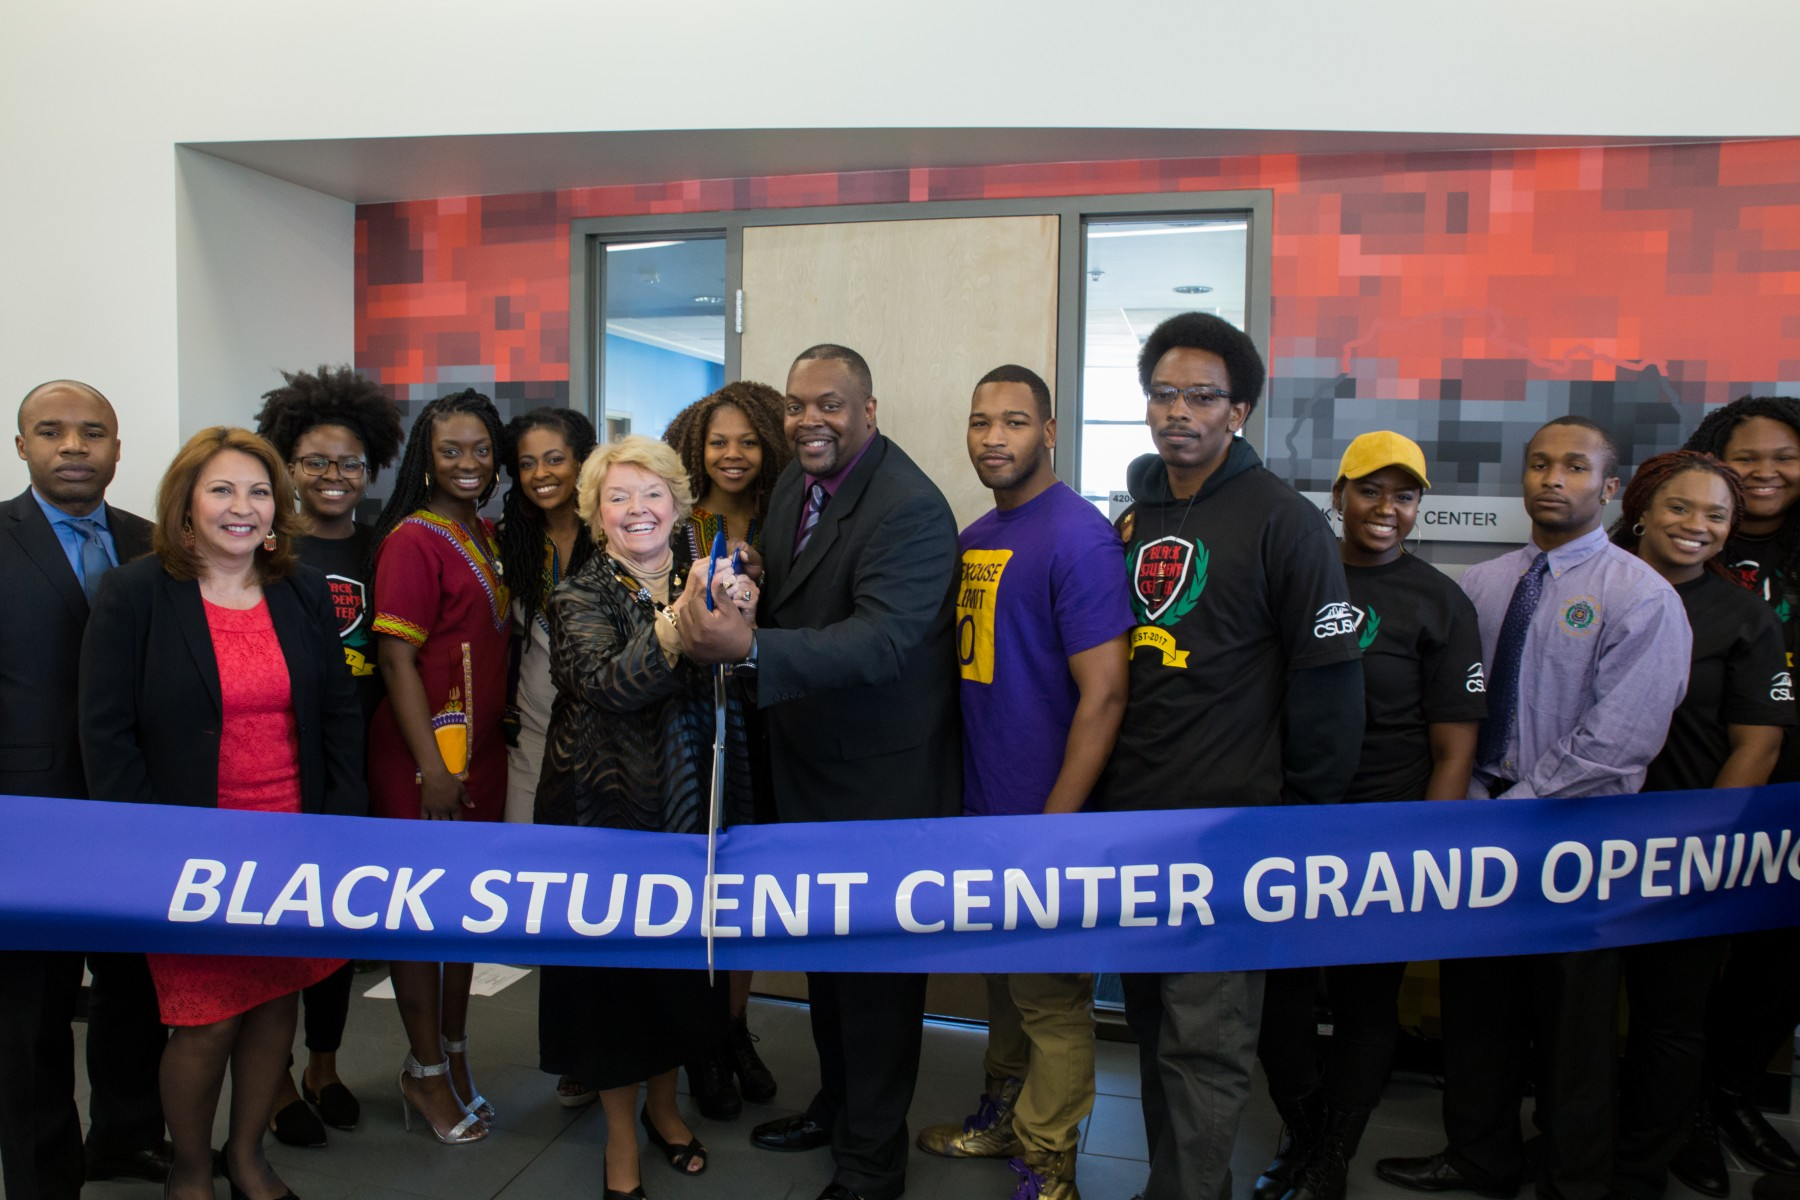 Black Student Center Ribbon Cutting Feb. 23, 2017